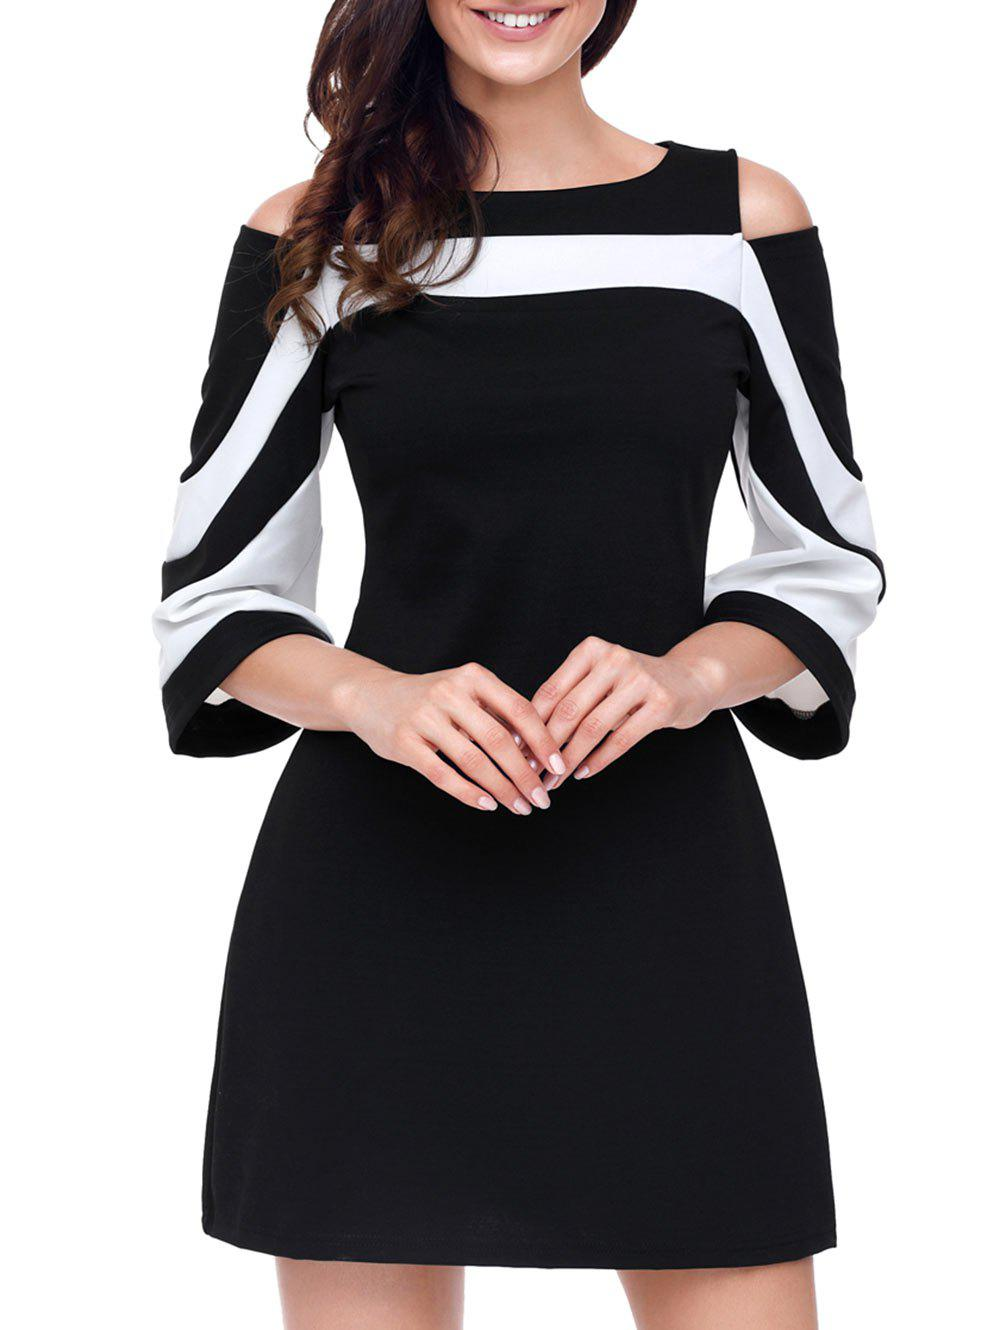 Cold Shoulder Two Tone A-line DressWOMEN<br><br>Size: L; Color: BLACK; Style: Brief; Material: Polyester,Spandex; Silhouette: A-Line; Dresses Length: Mini; Neckline: Boat Neck; Sleeve Type: Cold Shoulder; Sleeve Length: 3/4 Length Sleeves; Pattern Type: Others; With Belt: No; Season: Fall,Spring; Weight: 0.5500kg; Package Contents: 1 x Dress; Occasion: Casual ,Office;